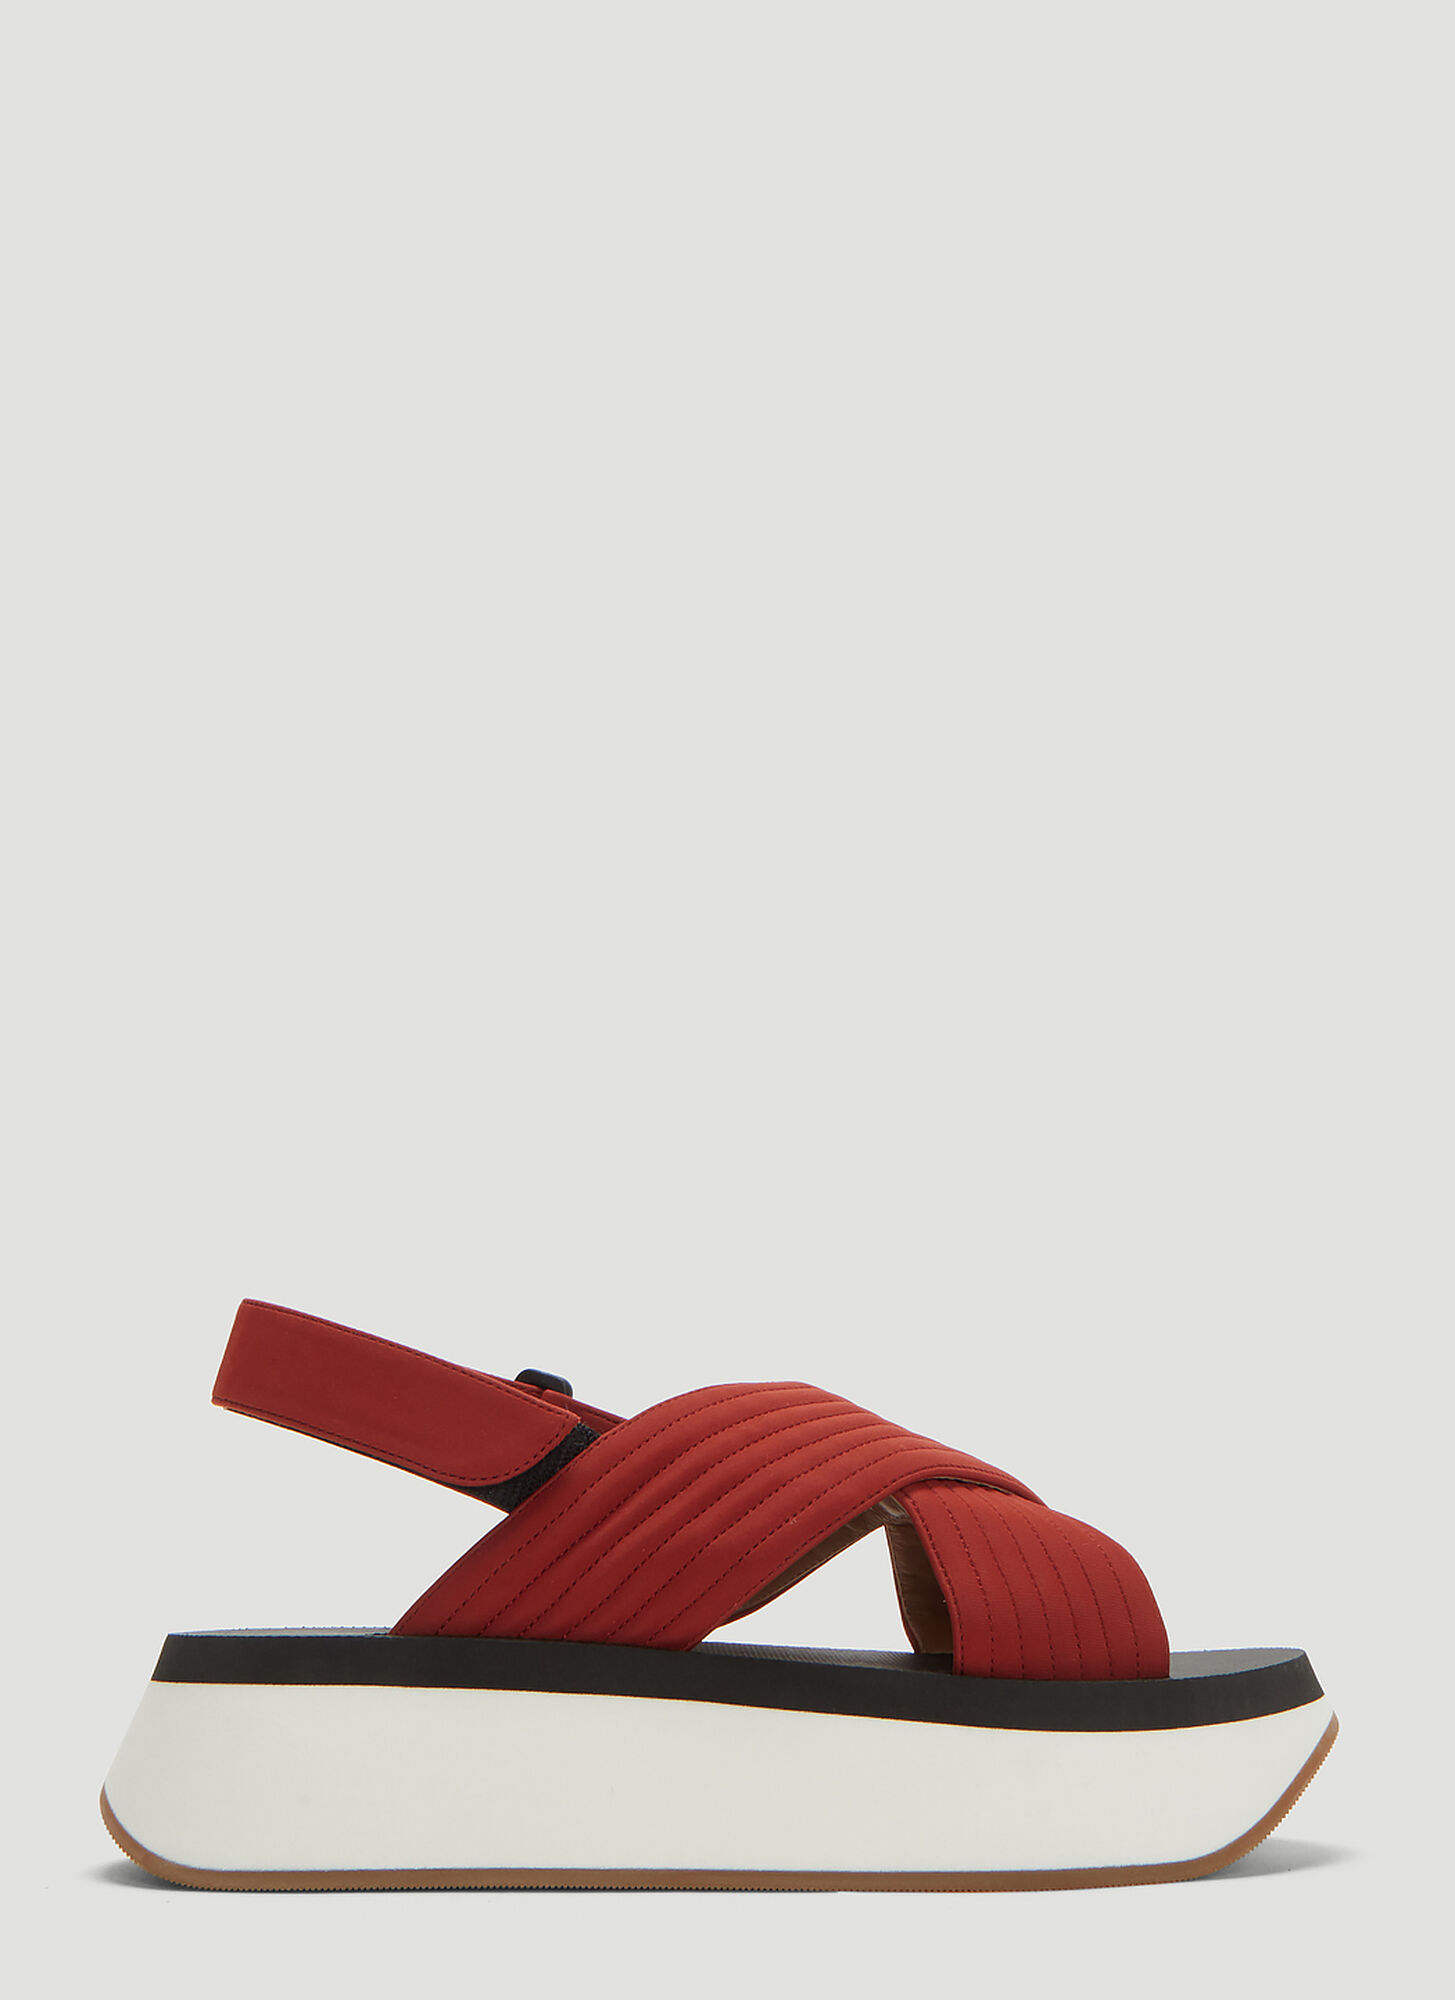 Marni Wedge Sandals in Red